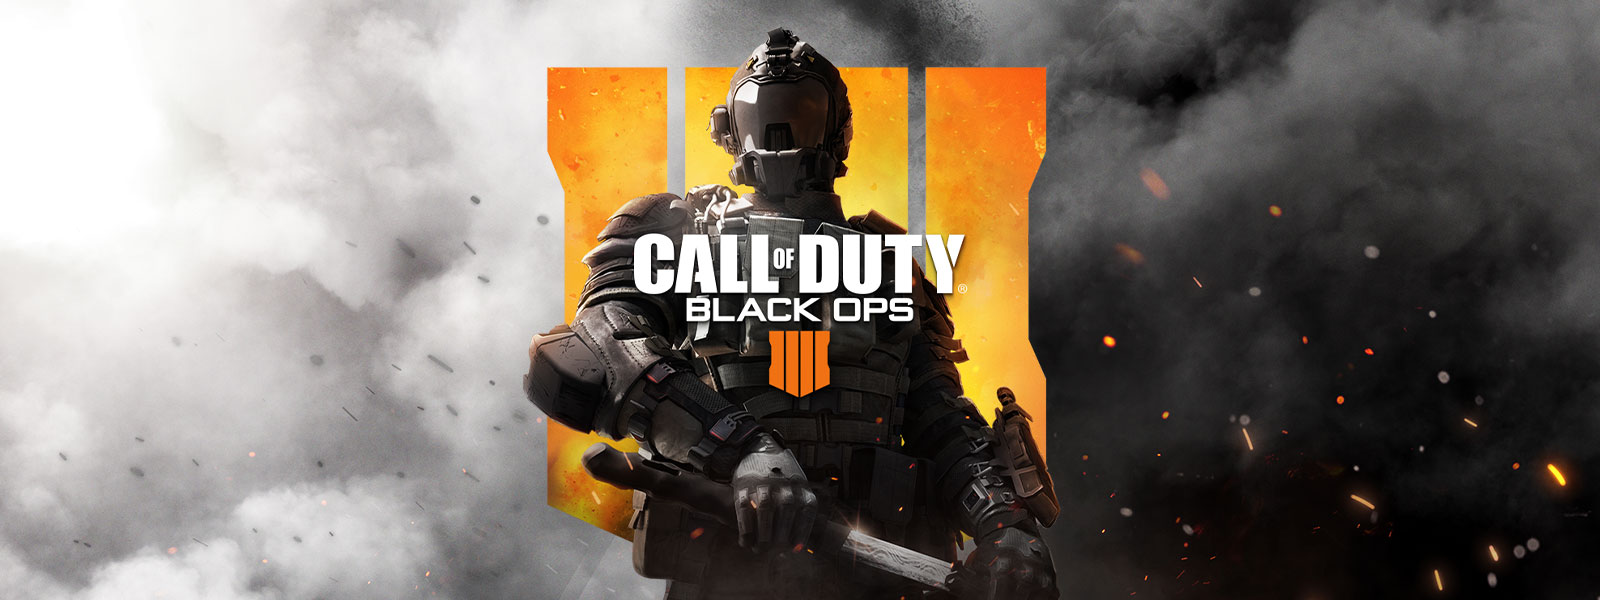 black ops 4 deluxe edition features